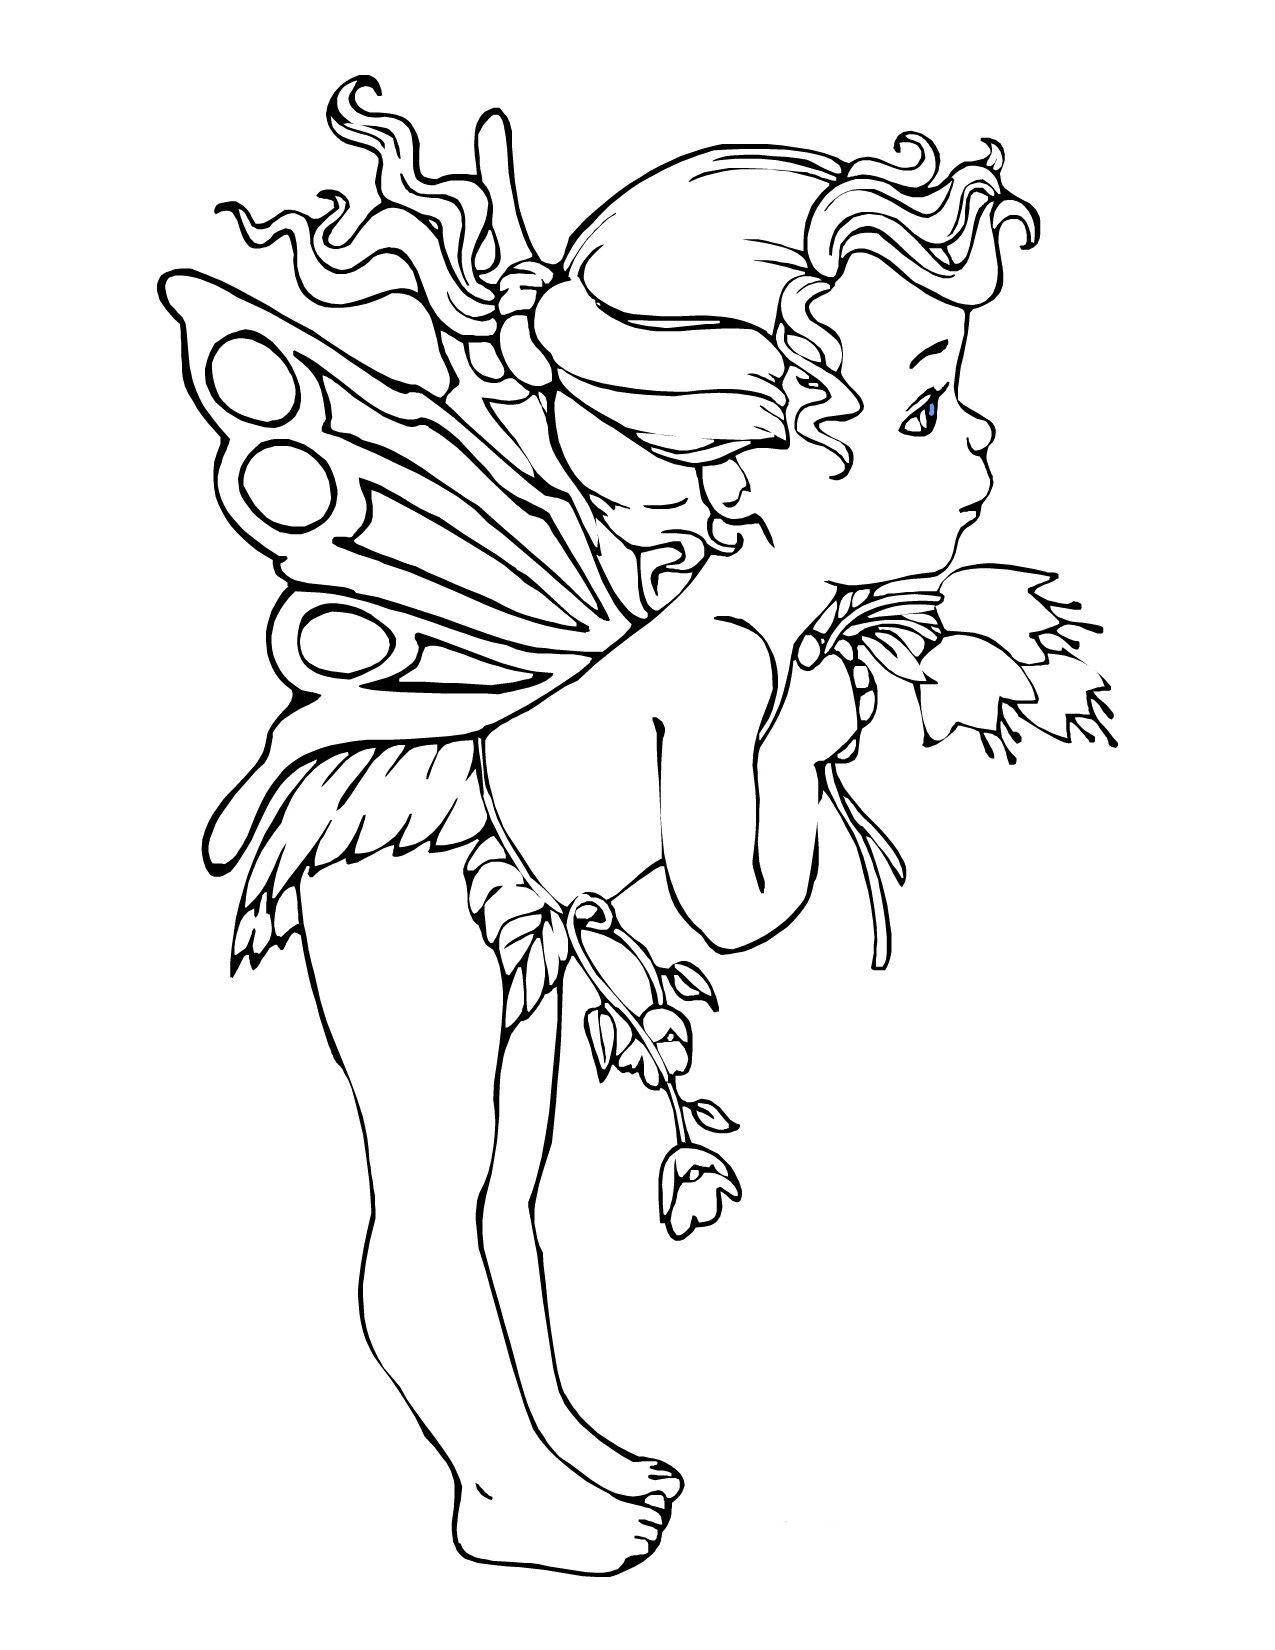 1275x1650 Sleeping Beauty Kiss Coloring Pages For Kids Inspirational Fairies